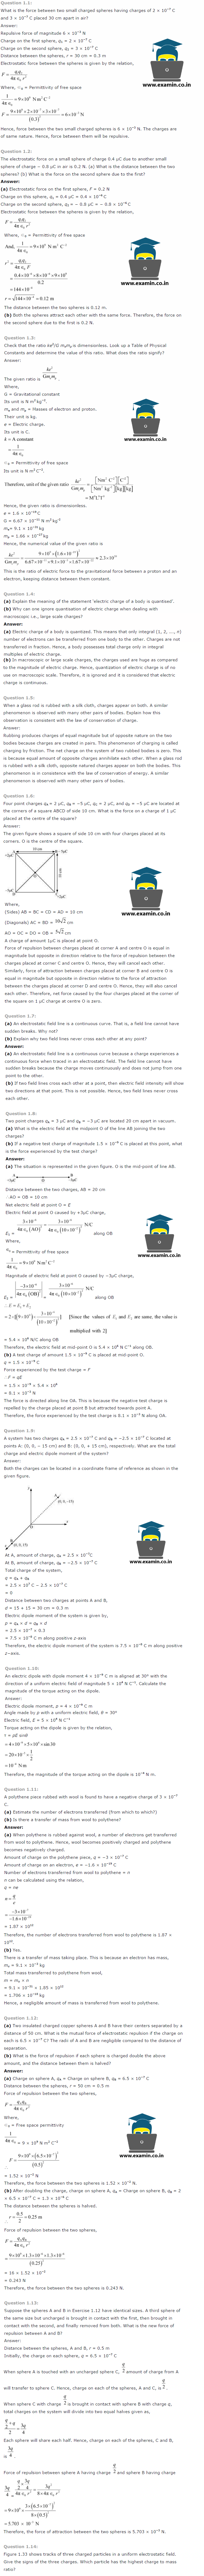 NCERT Solutions Class 12 Physics Chapter 1